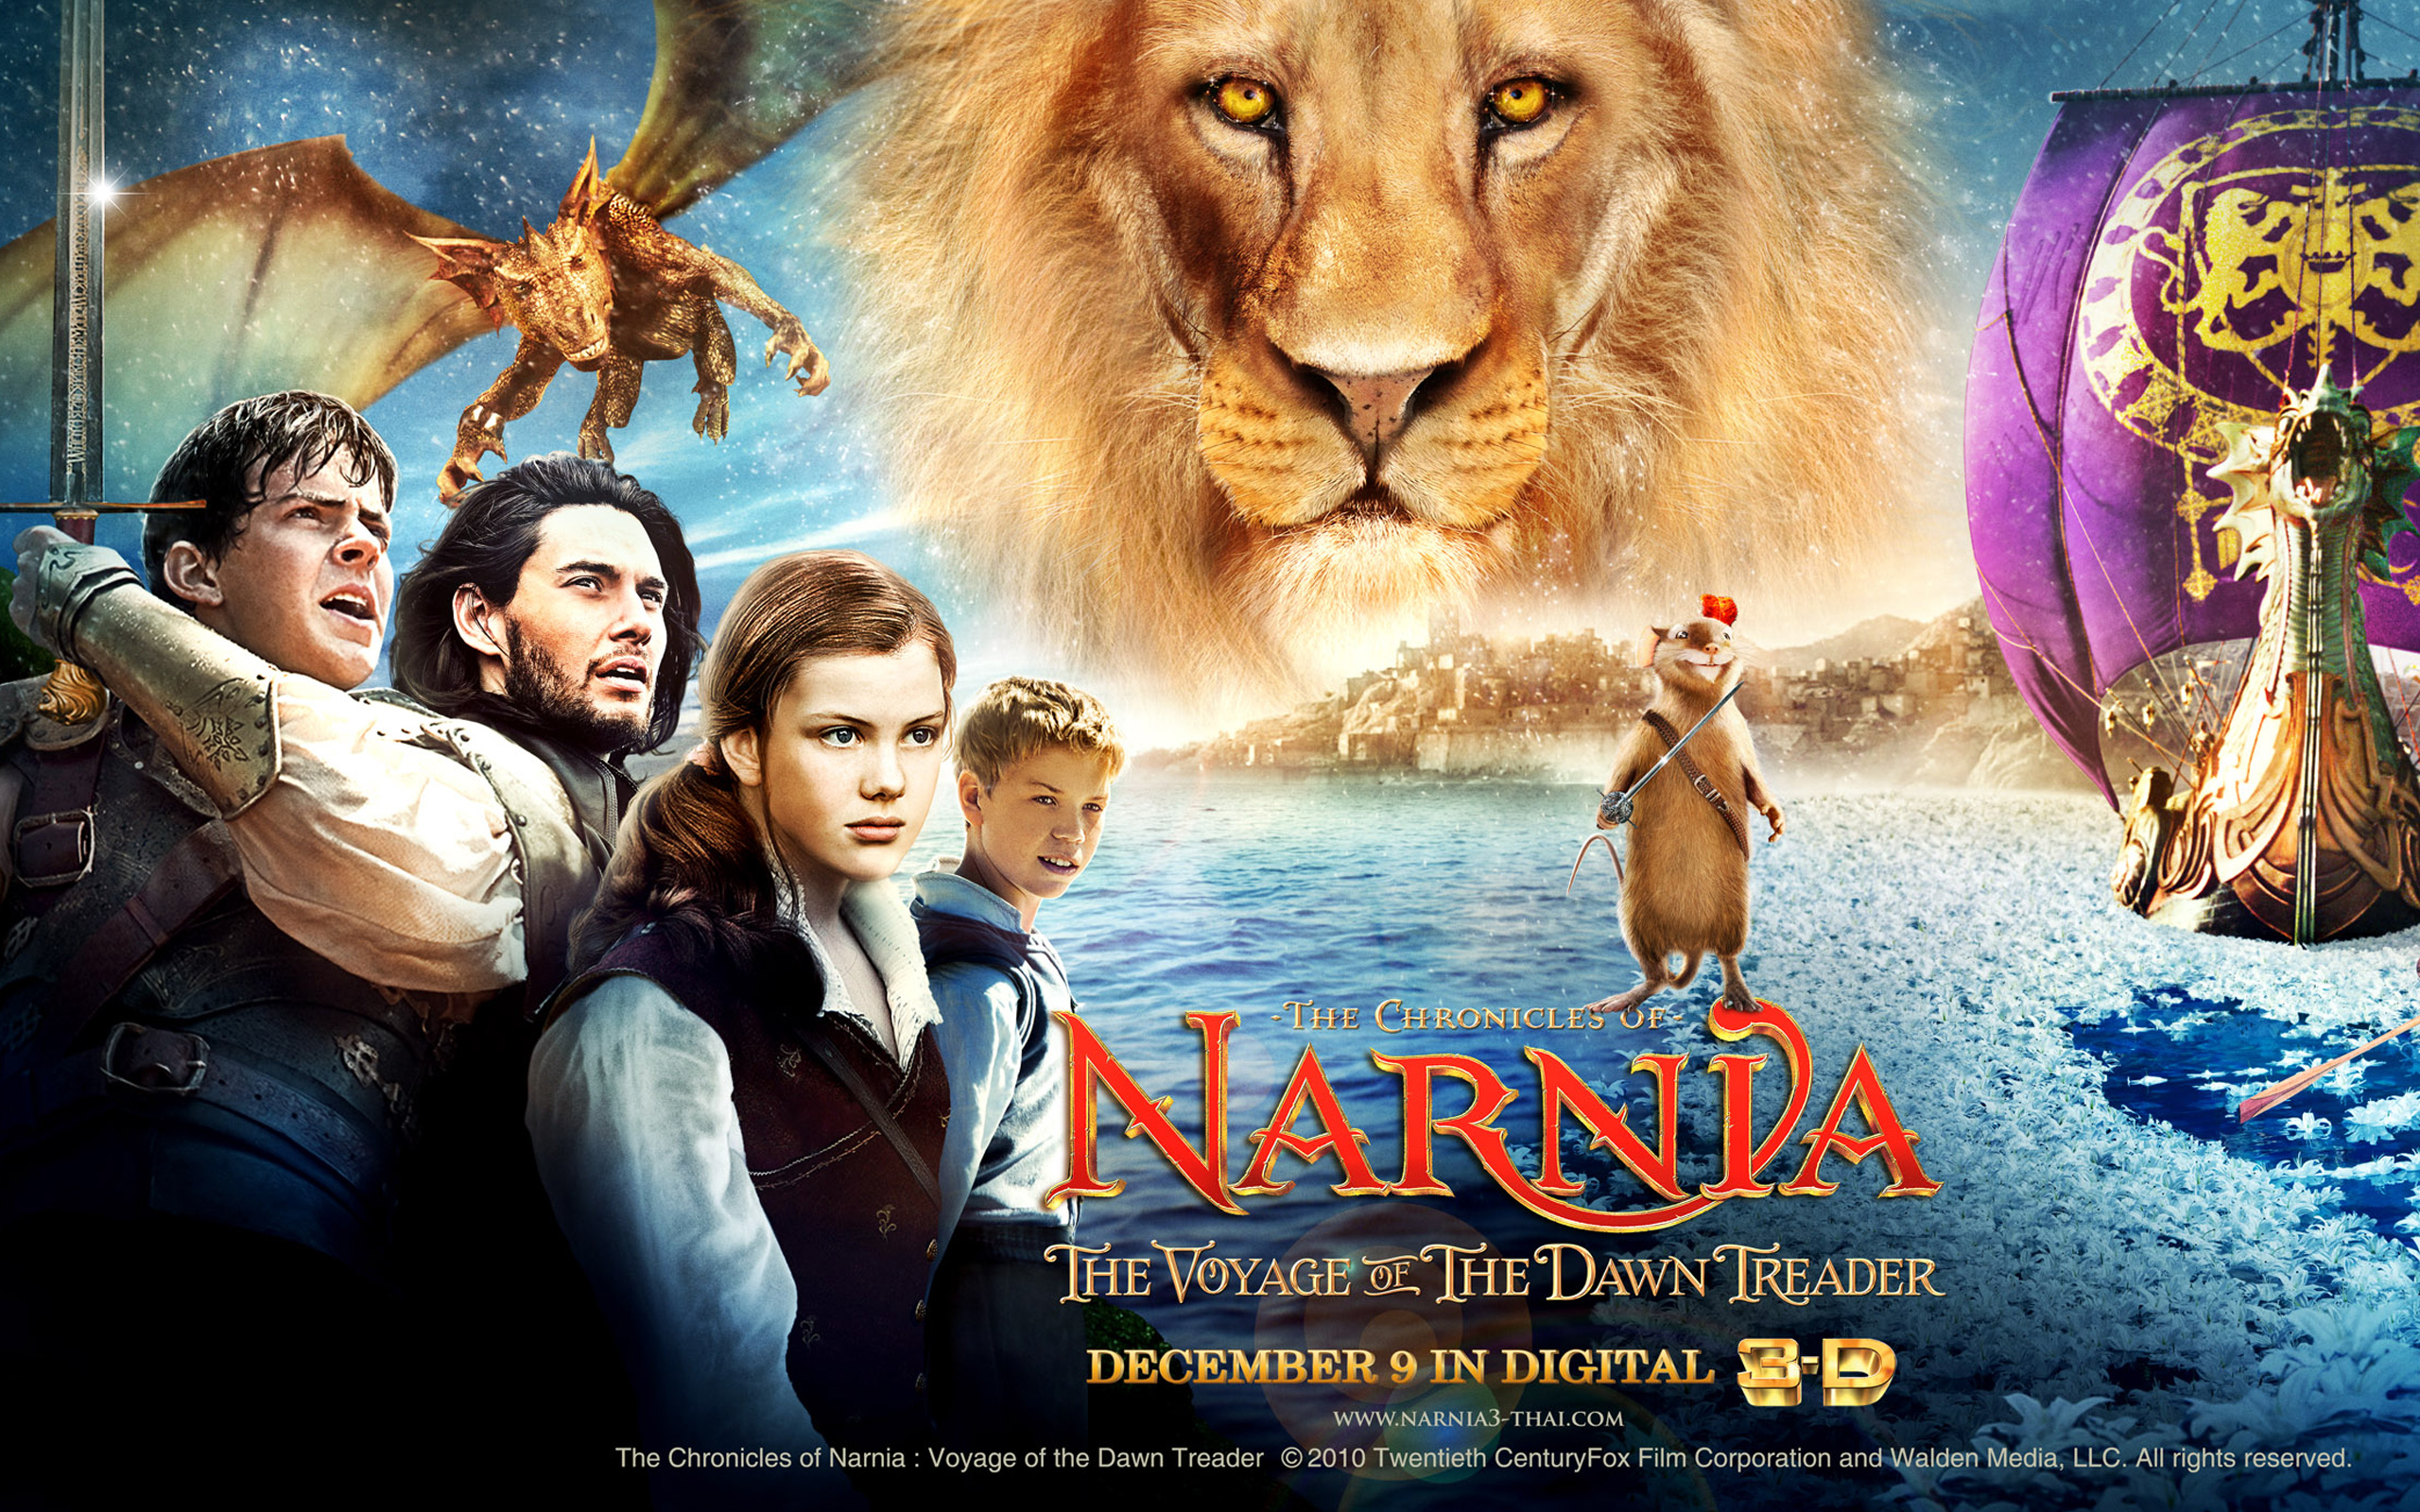 2560x1600 - The Chronicles of Narnia: The Voyage of the Dawn Treader Wallpapers 4